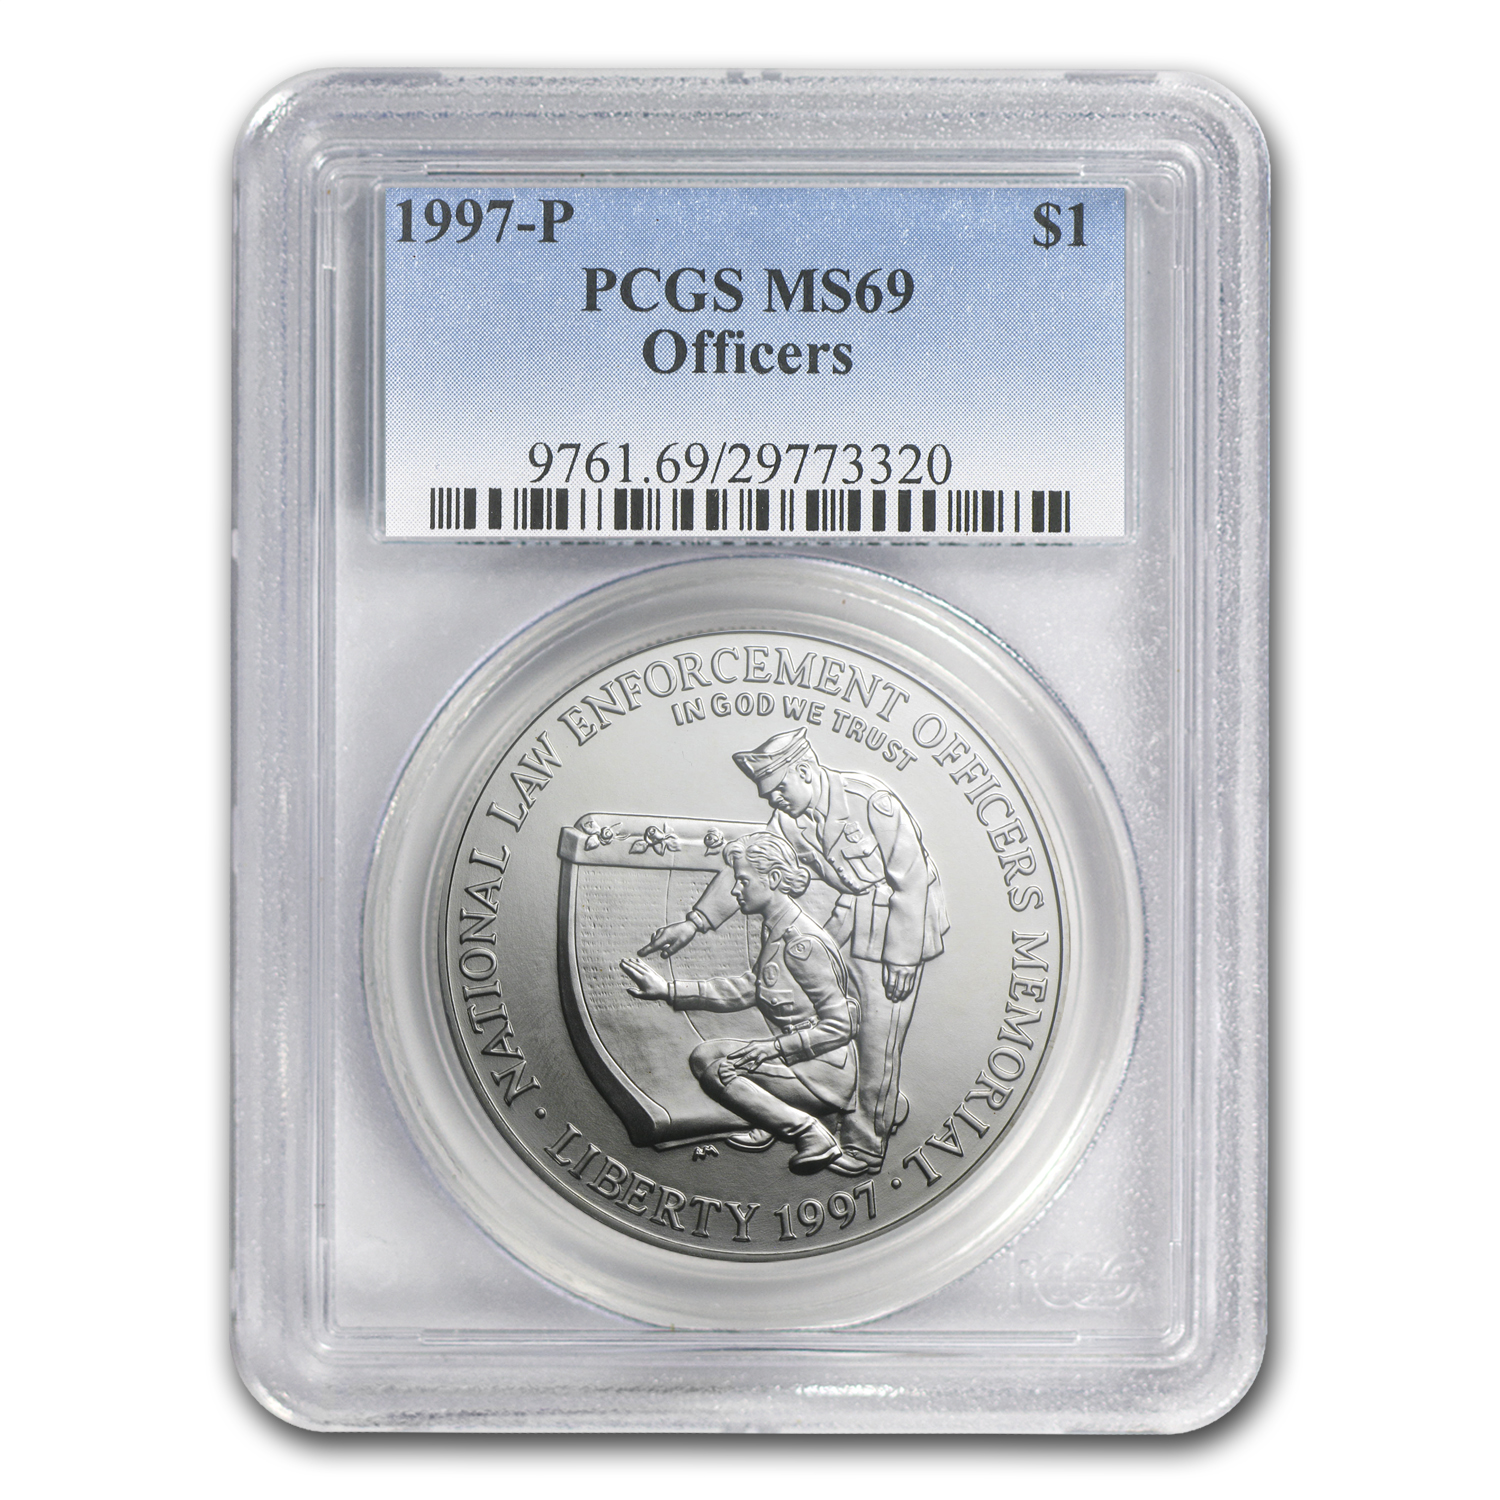 1997-P Law Enforcement $1 Silver Commemorative - MS-69 PCGS